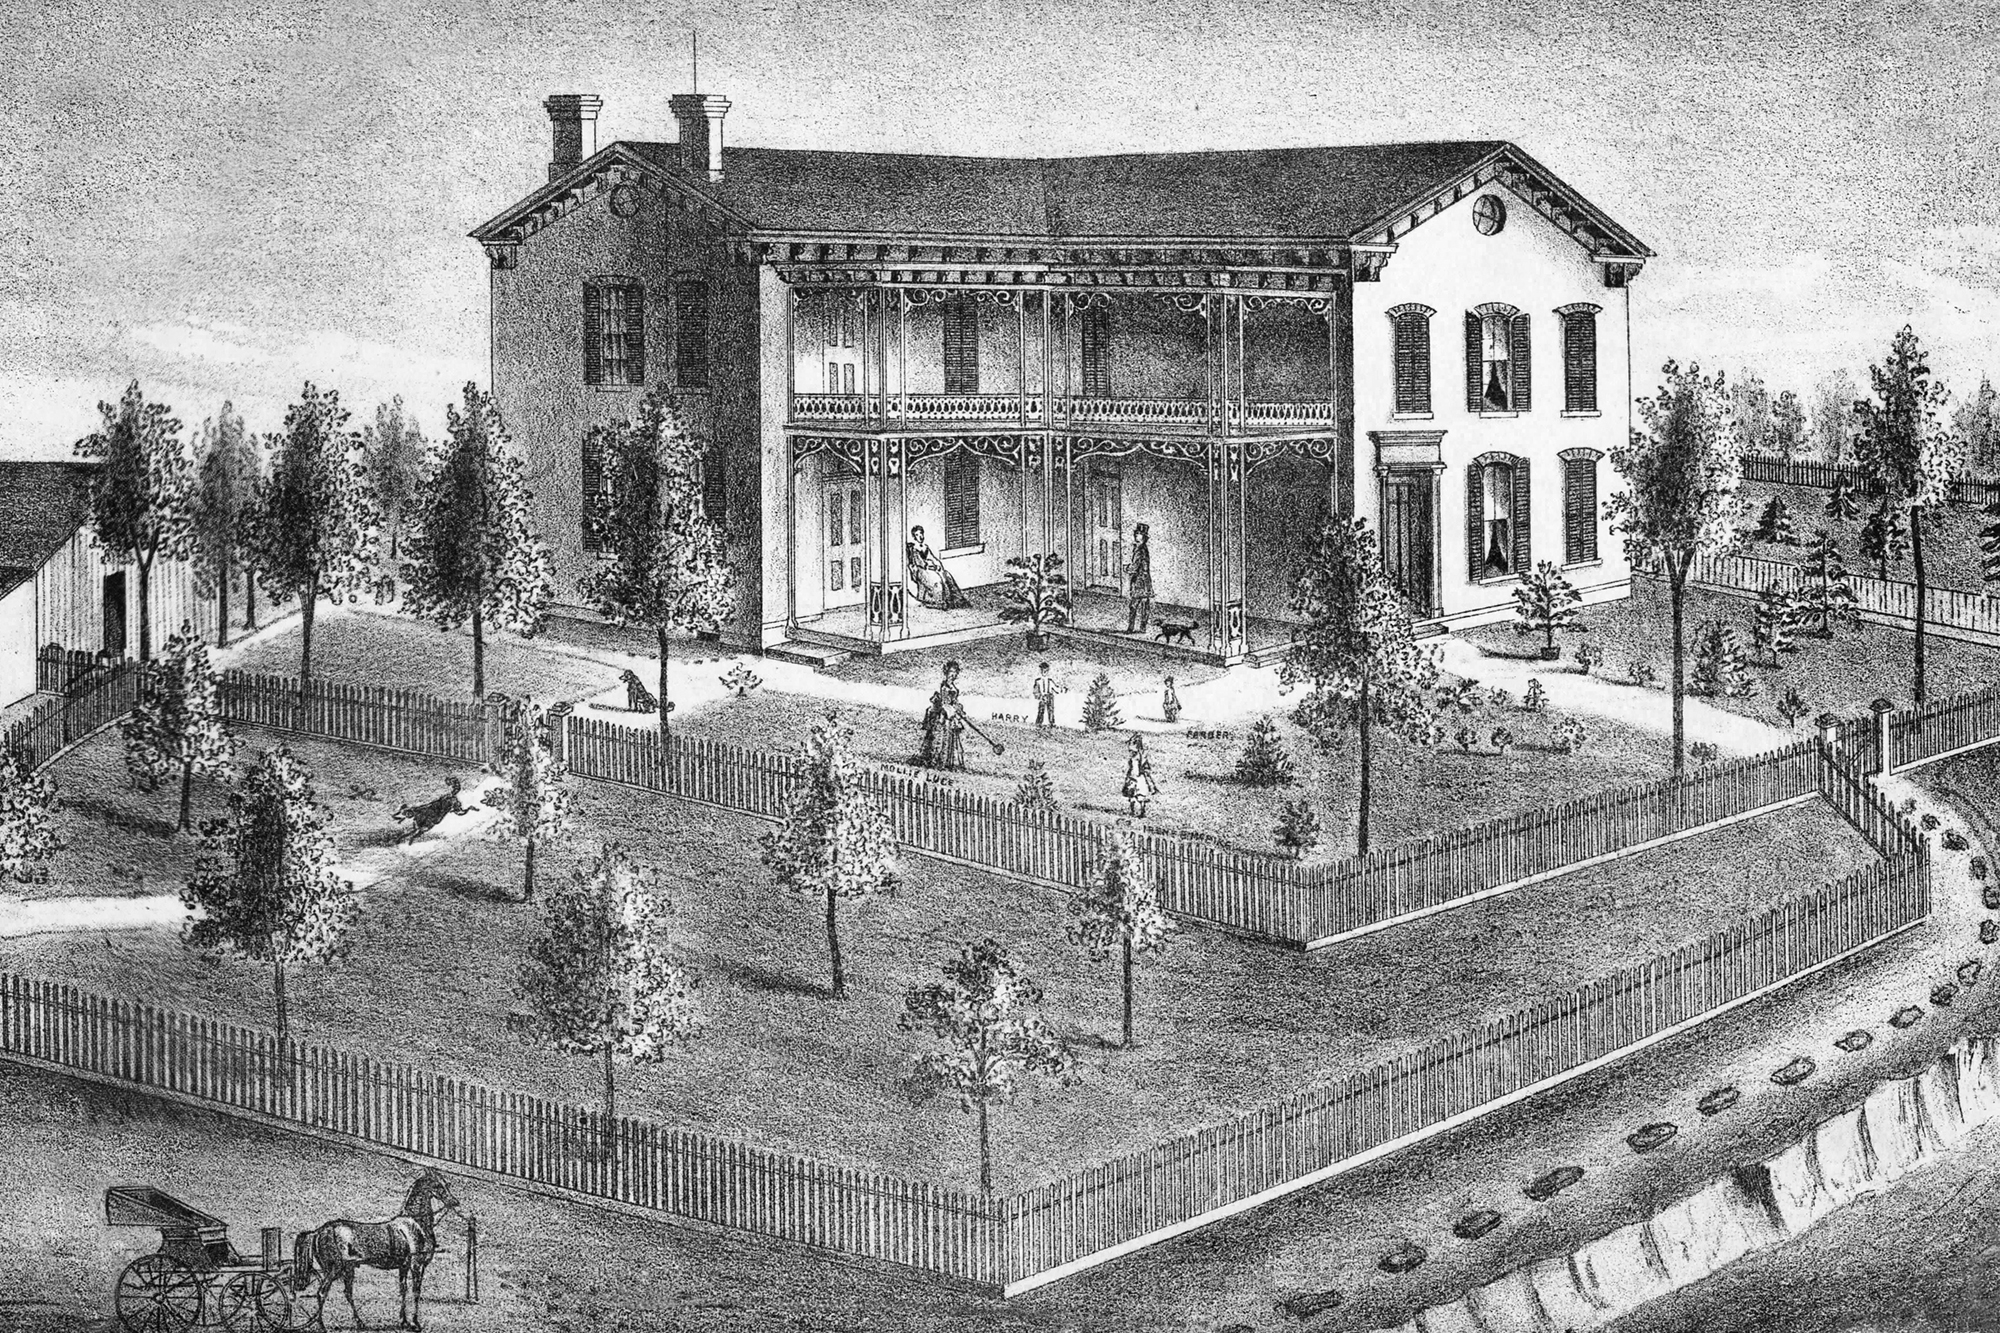 SW Farber Home sketched in 1873_Lacy McDonald.jpg